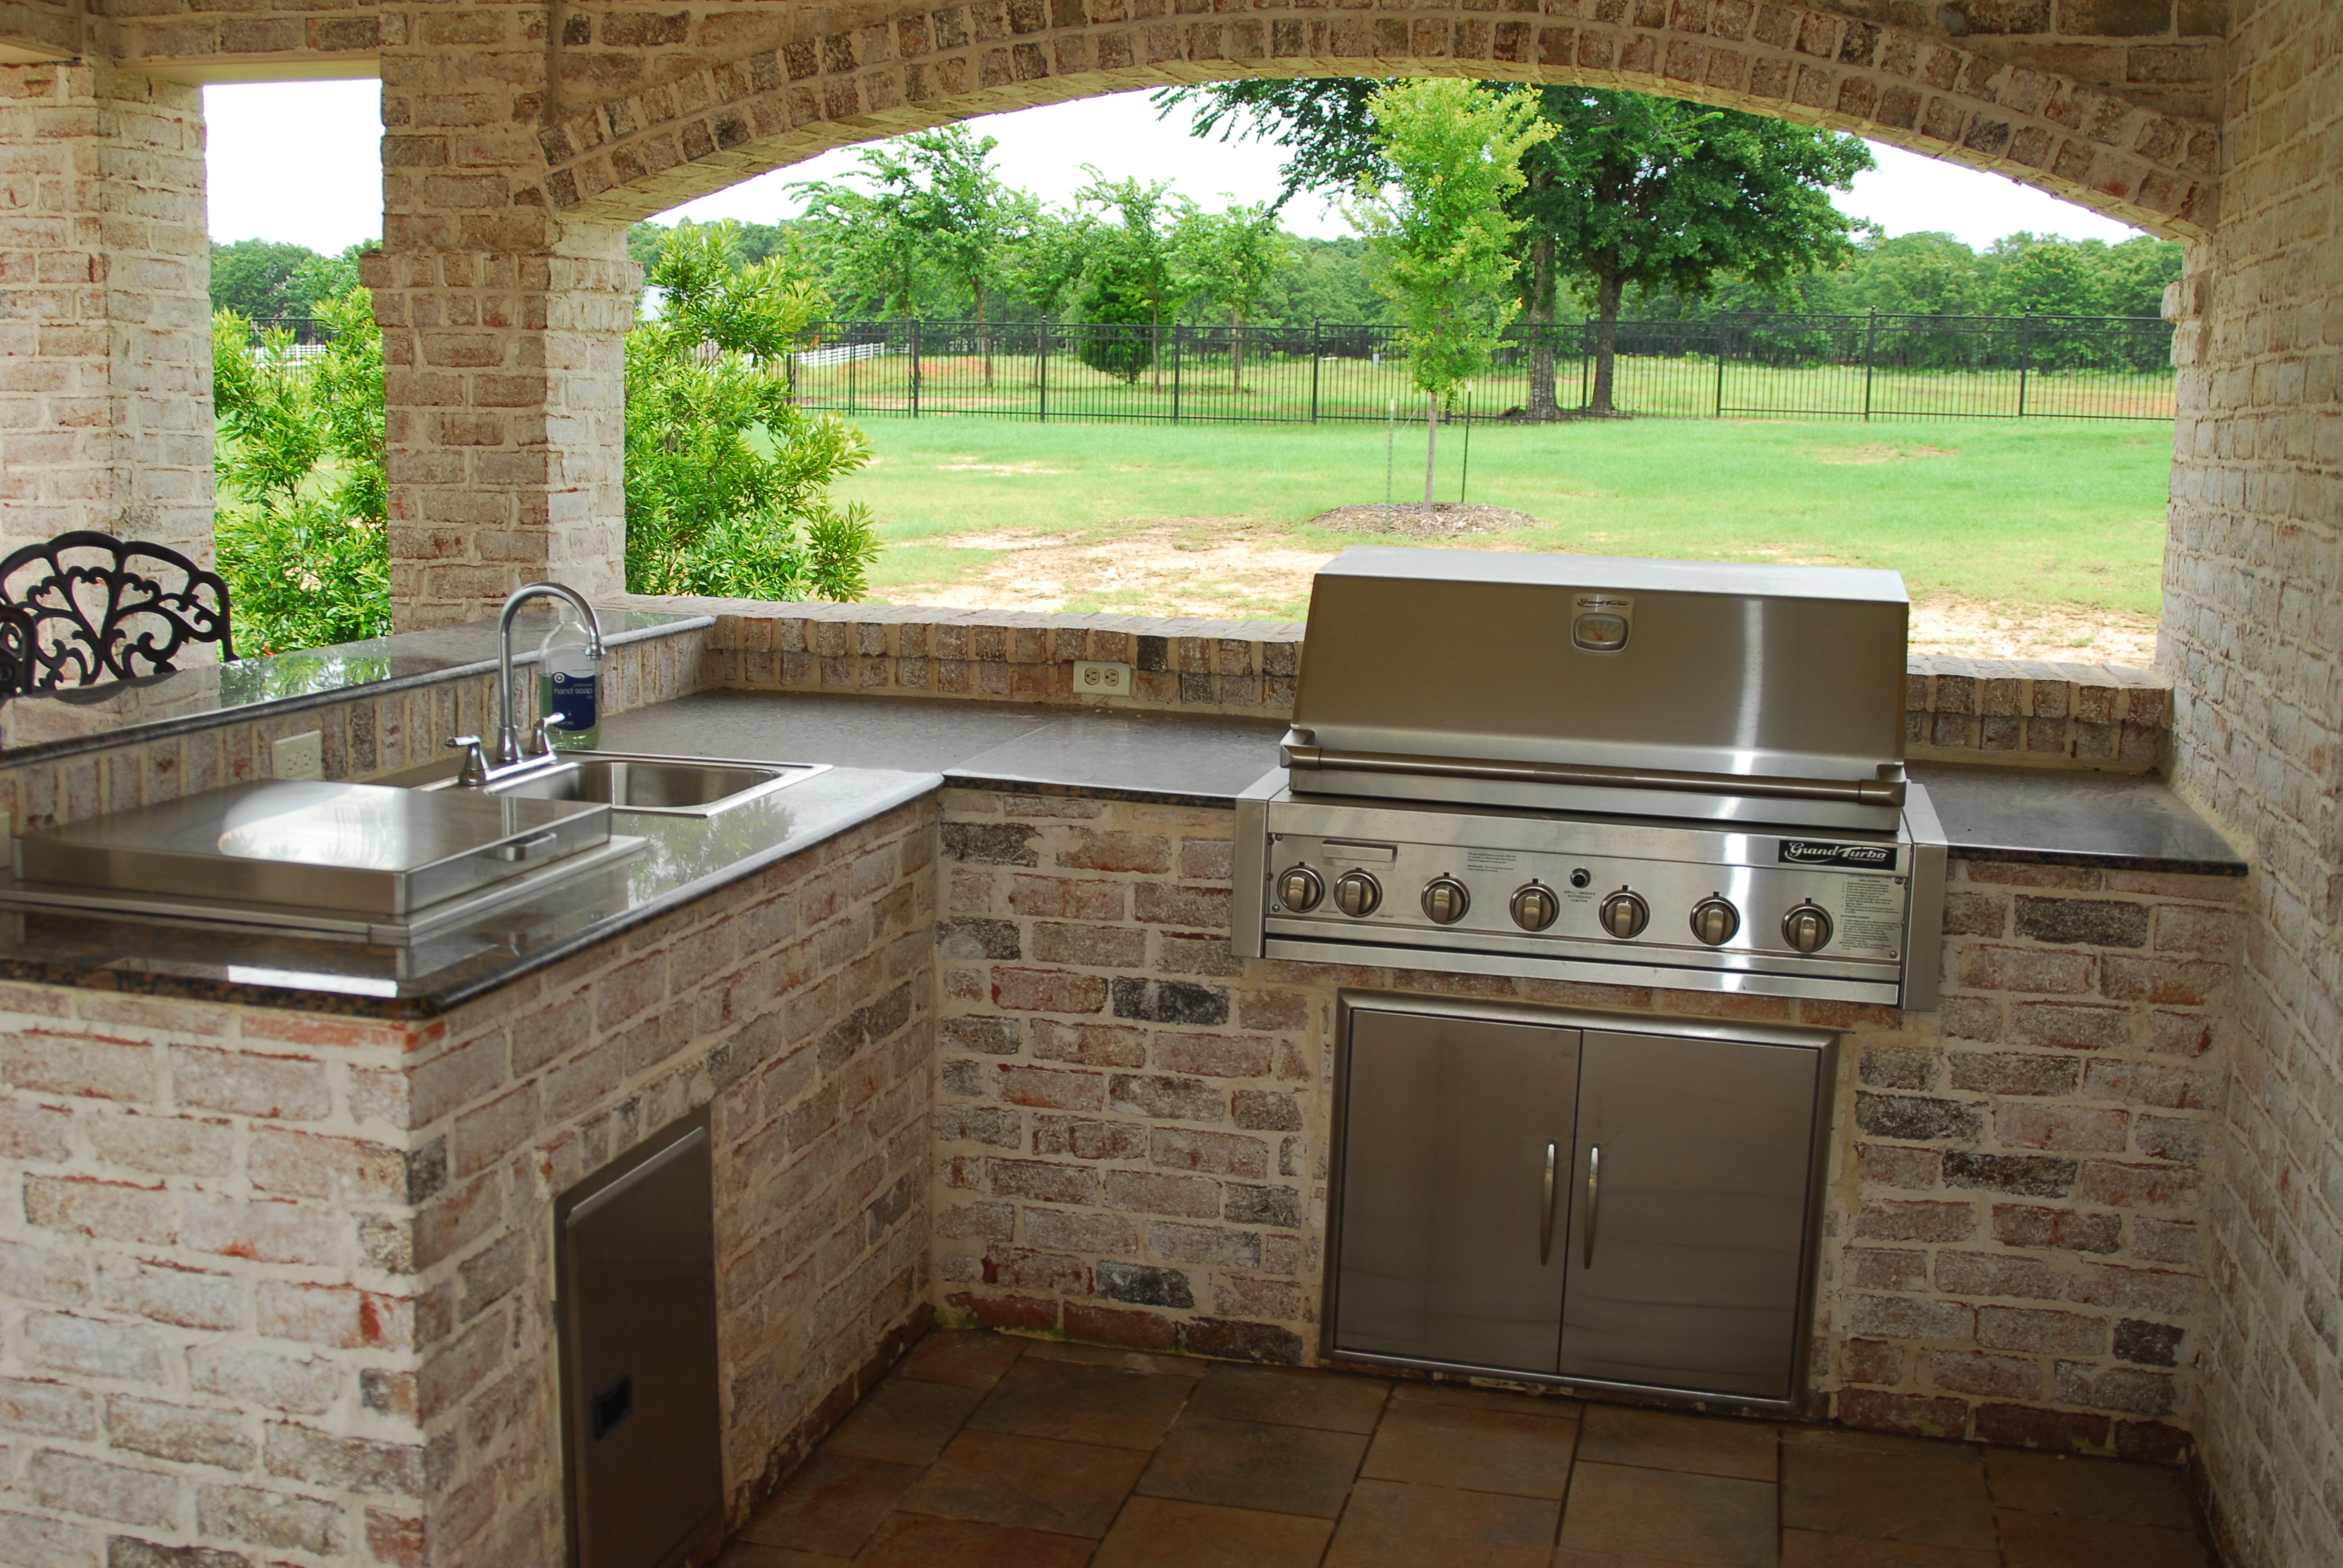 Outdoor Kitchens The Earthscape pany